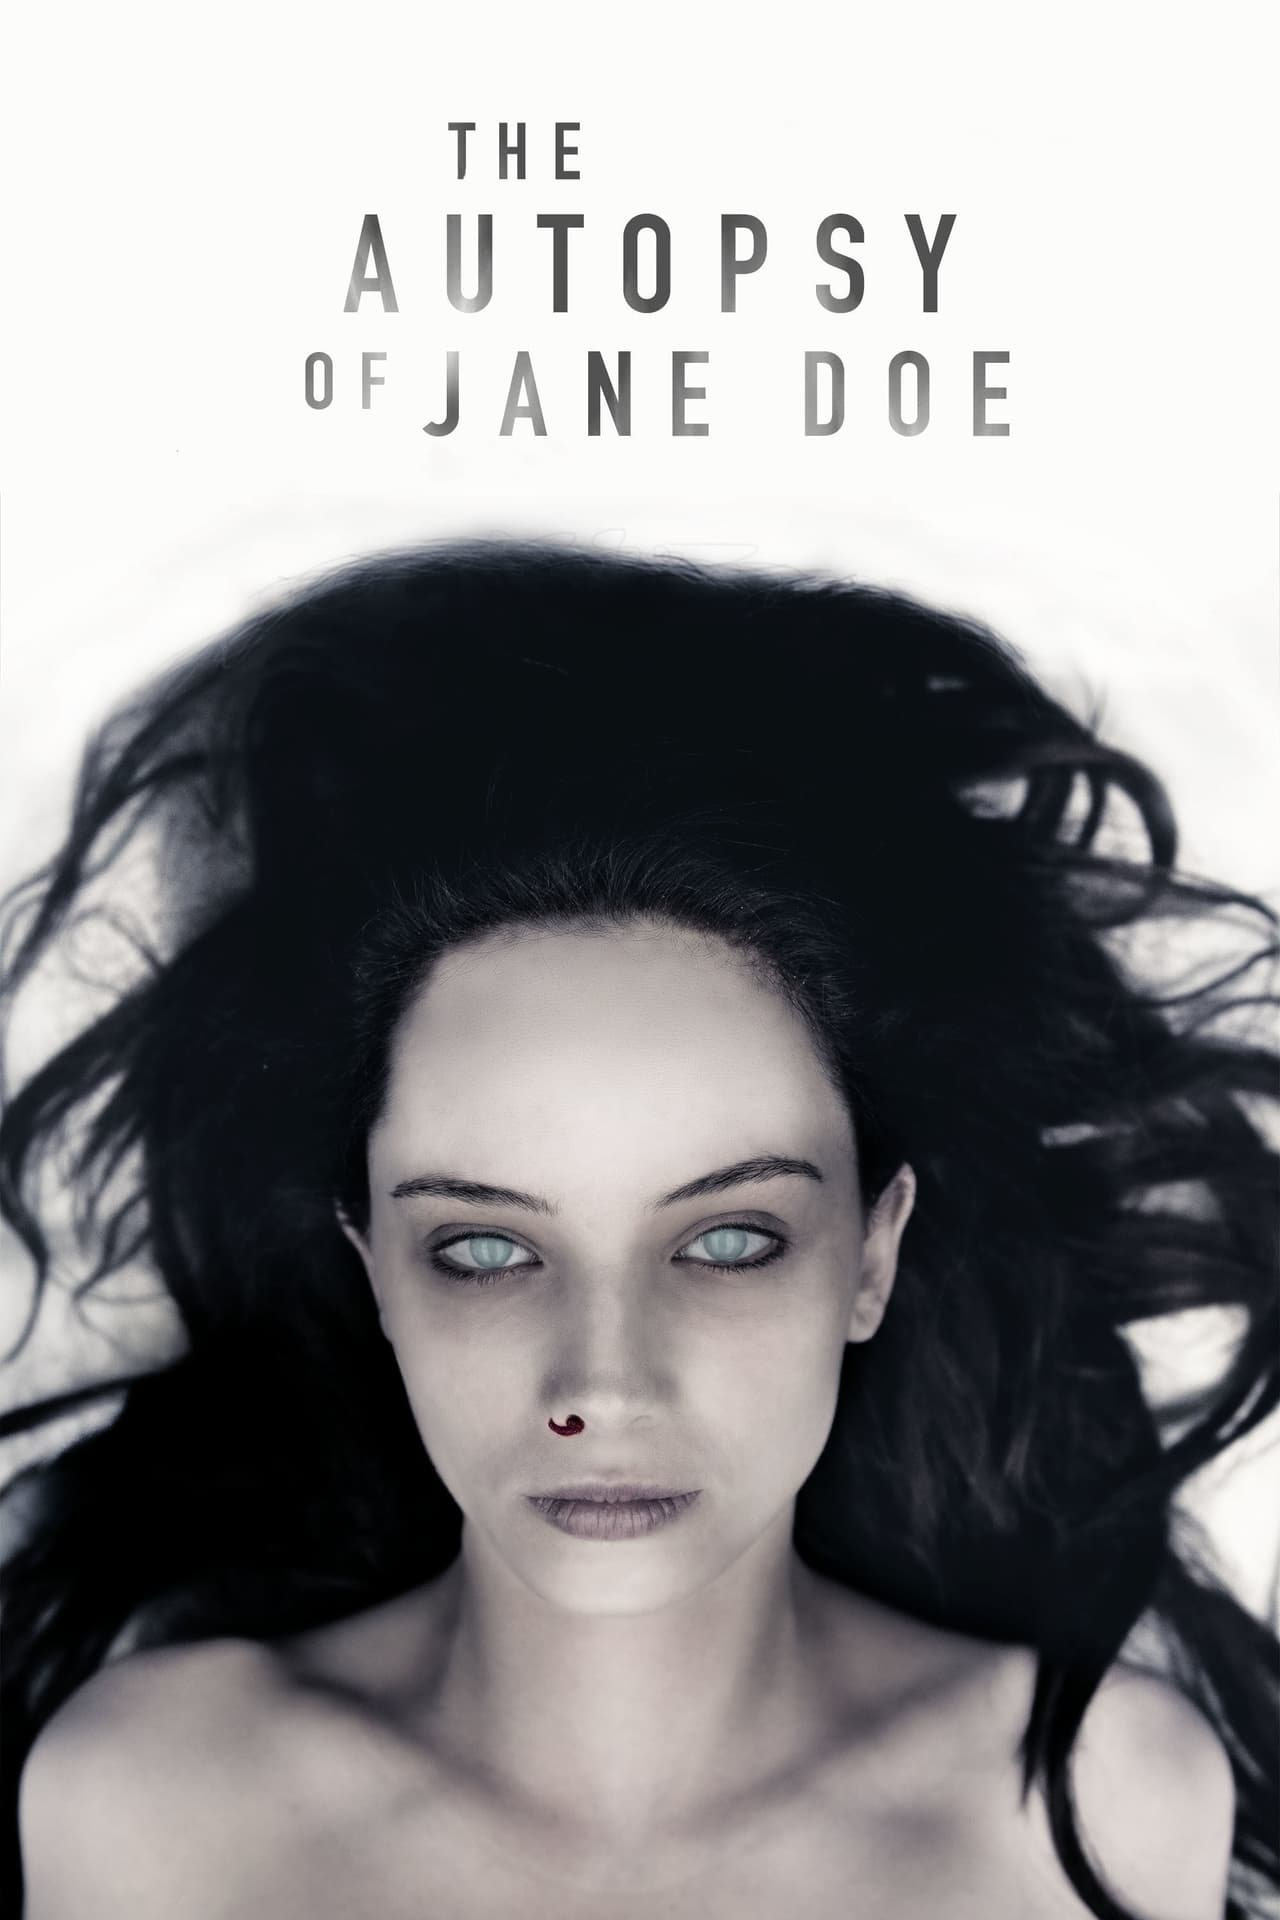 Watch Full Movie The Autopsy Of Jane Doe 2016 Online Streaming